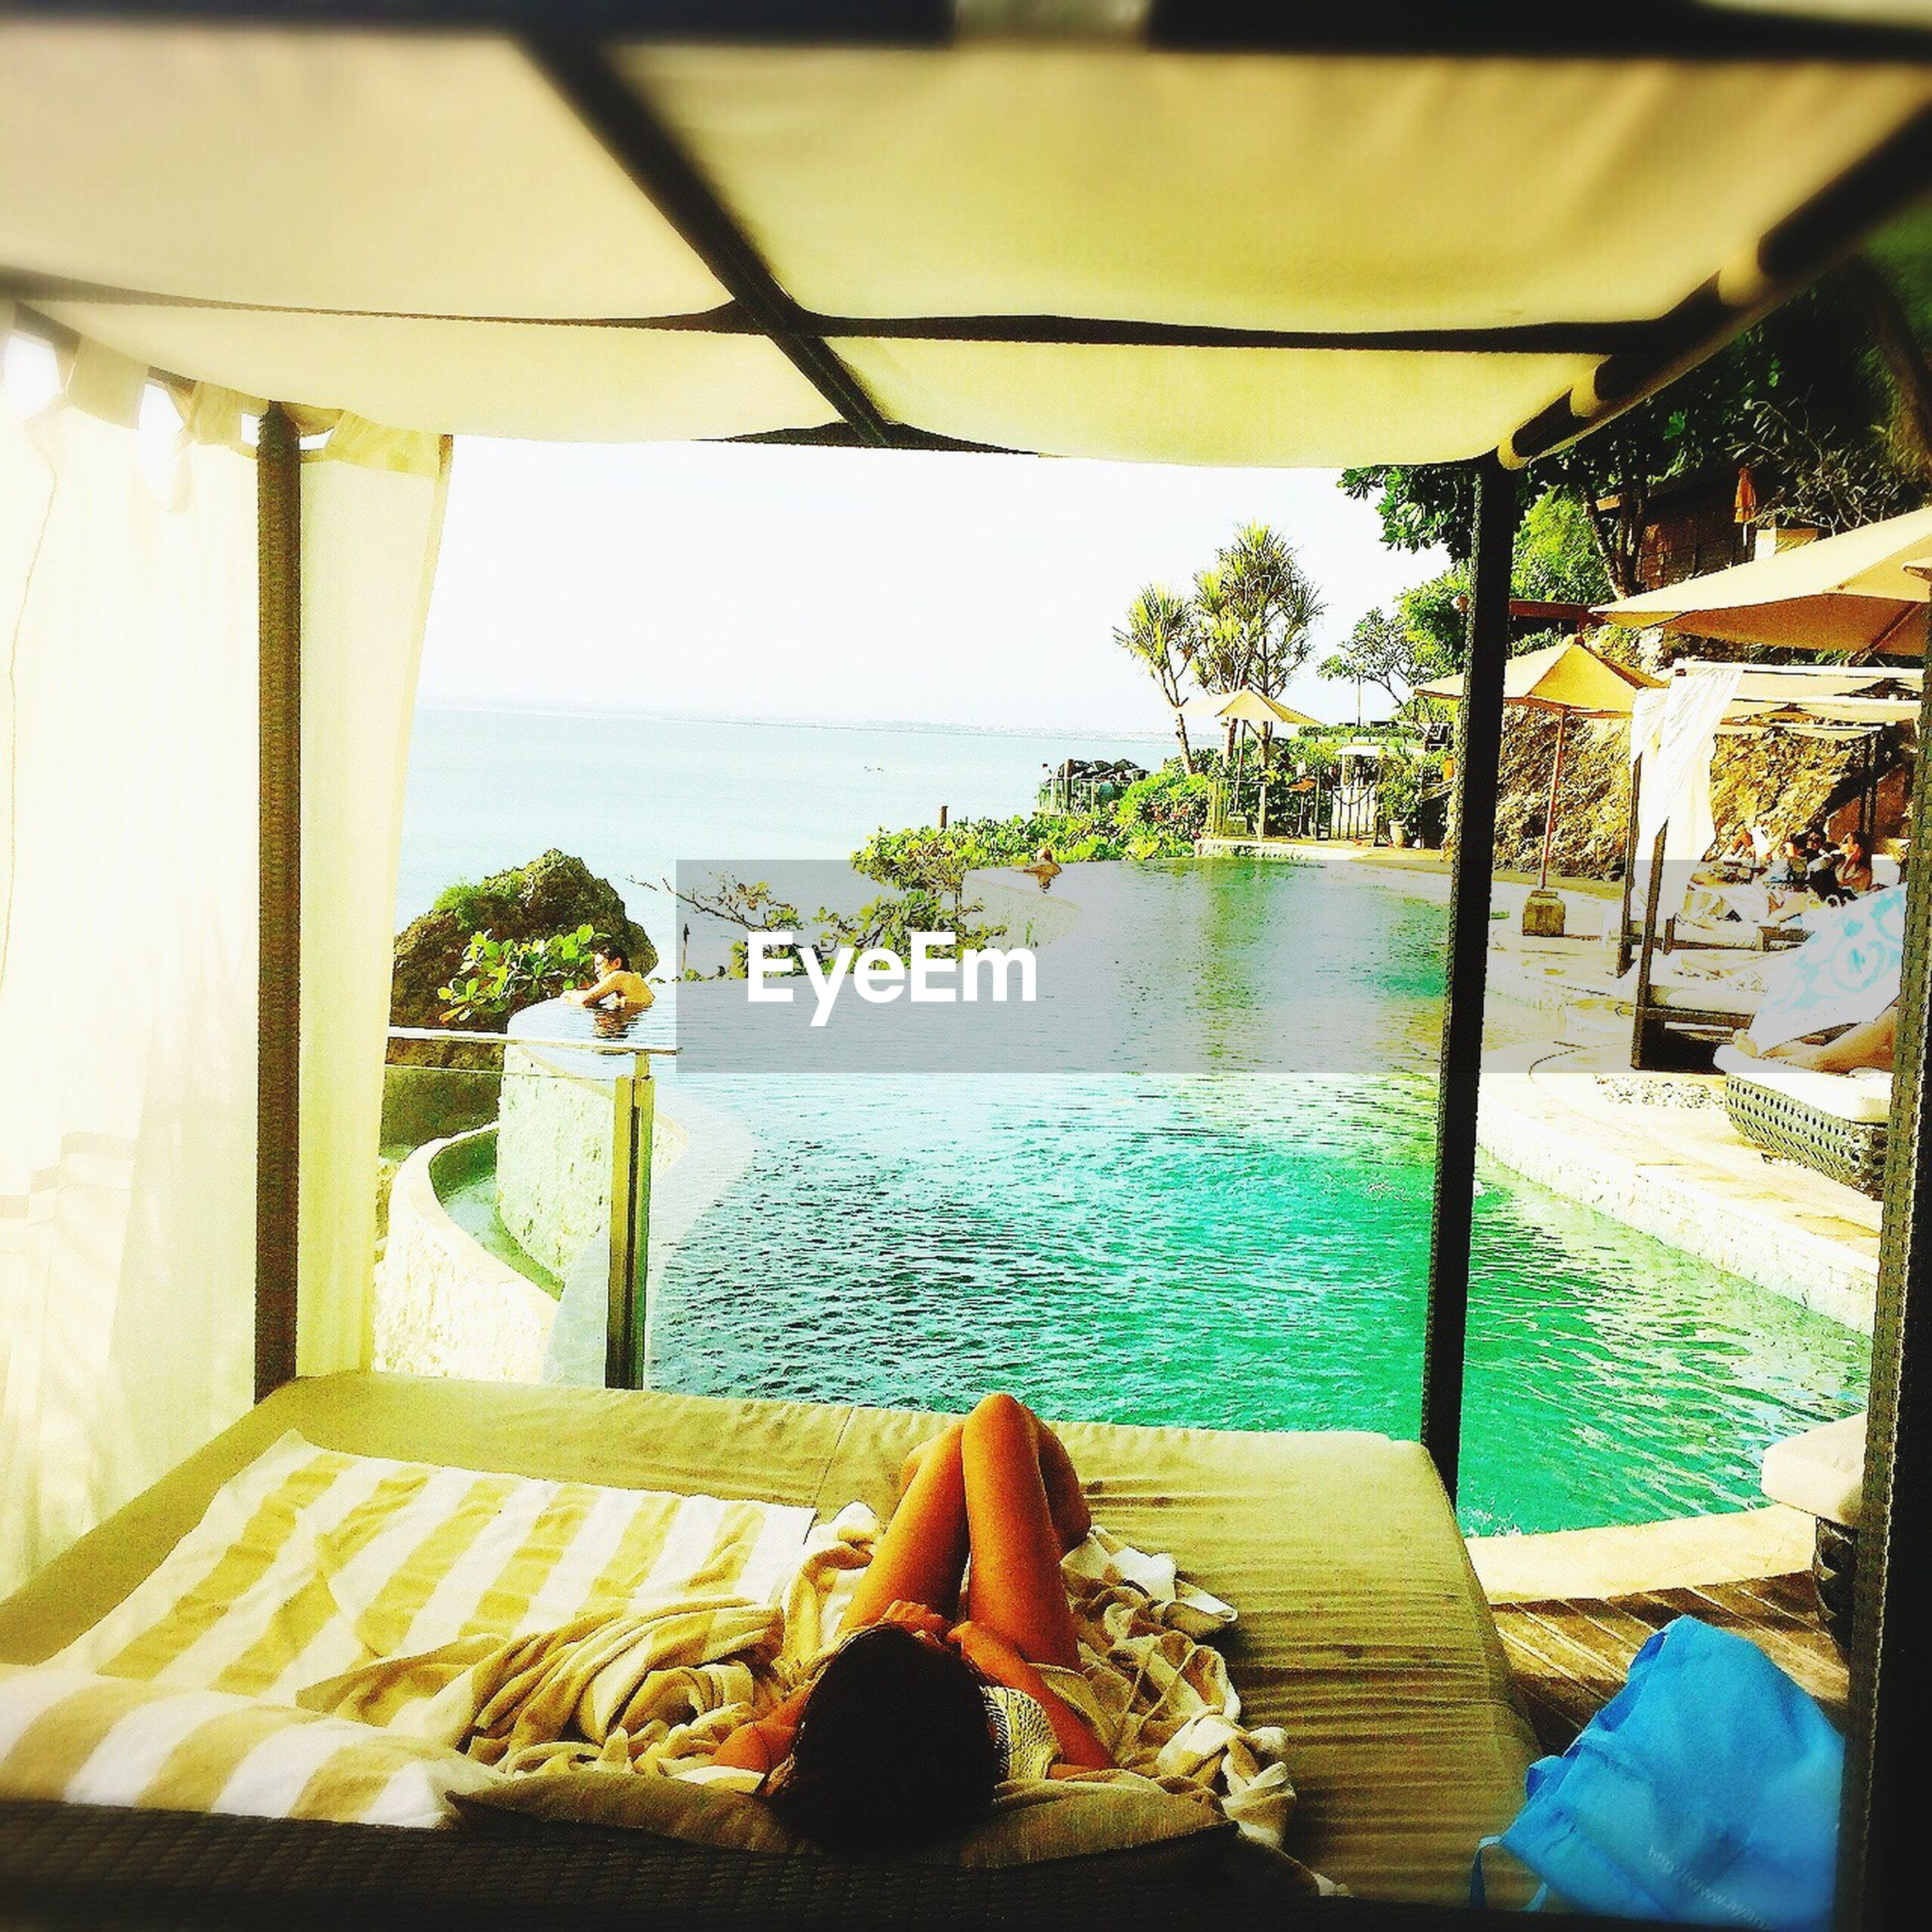 sea, water, sky, horizon over water, indoors, nature, tranquility, built structure, tranquil scene, beauty in nature, sunlight, scenics, day, table, swimming pool, beach, architecture, blue, house, potted plant